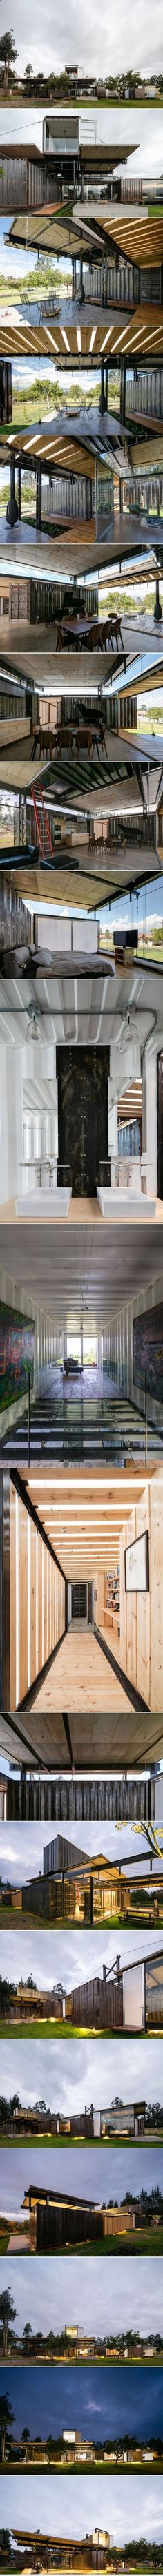 Container House - Explore this Shipping Container House by Daniel Moreno Flores  Sebastian Calero in 3D Virtual Reality | HomeDSGN - Who Else Wants Simple Step-By-Step Plans To Design And Build A Container Home From Scratch?